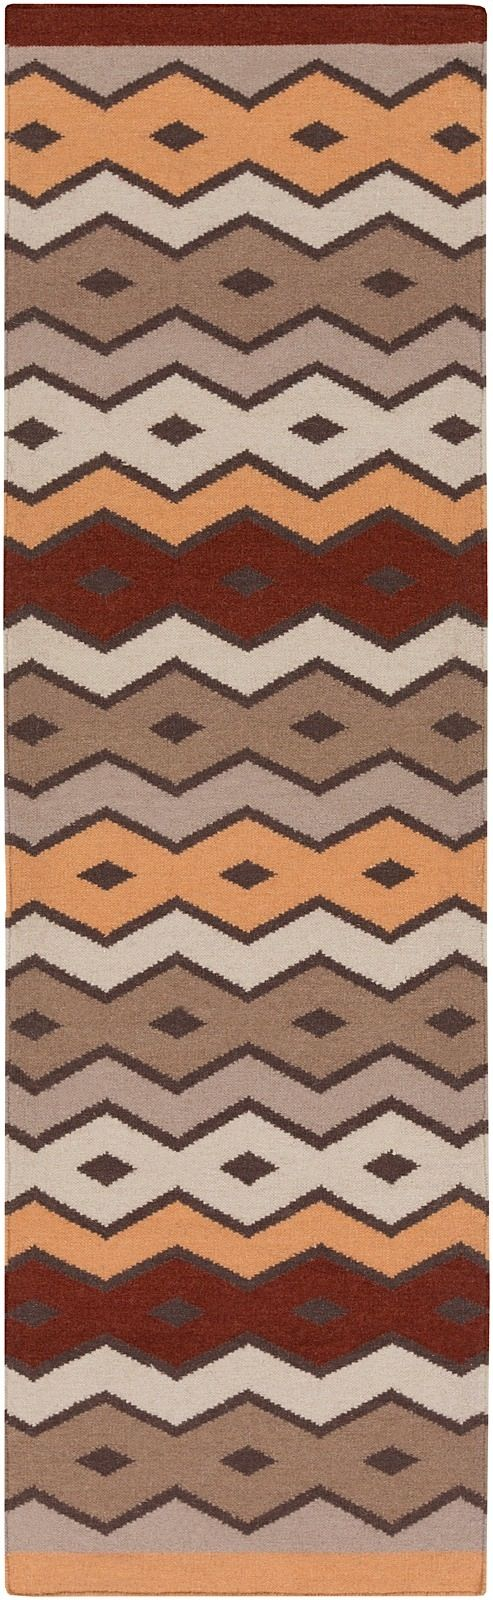 surya native contemporary area rug collection